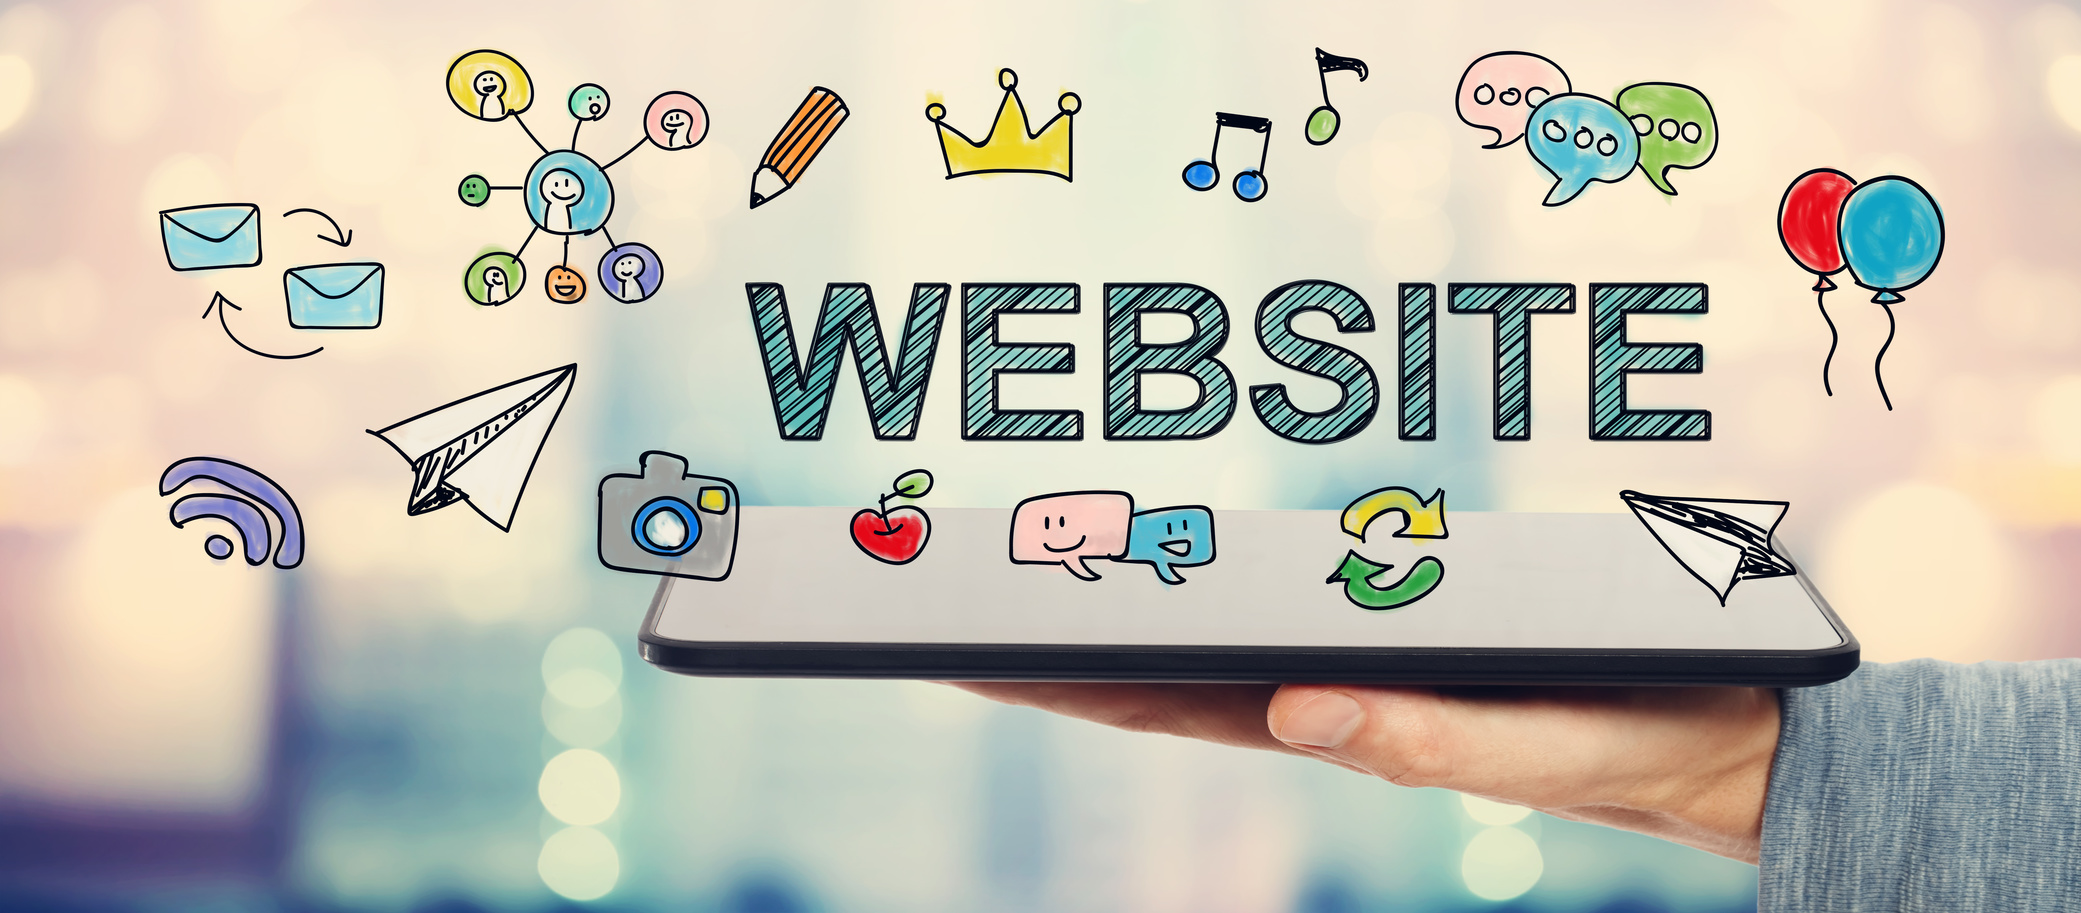 Top 5 Reasons Why Businesses Should Do a Website Redesign